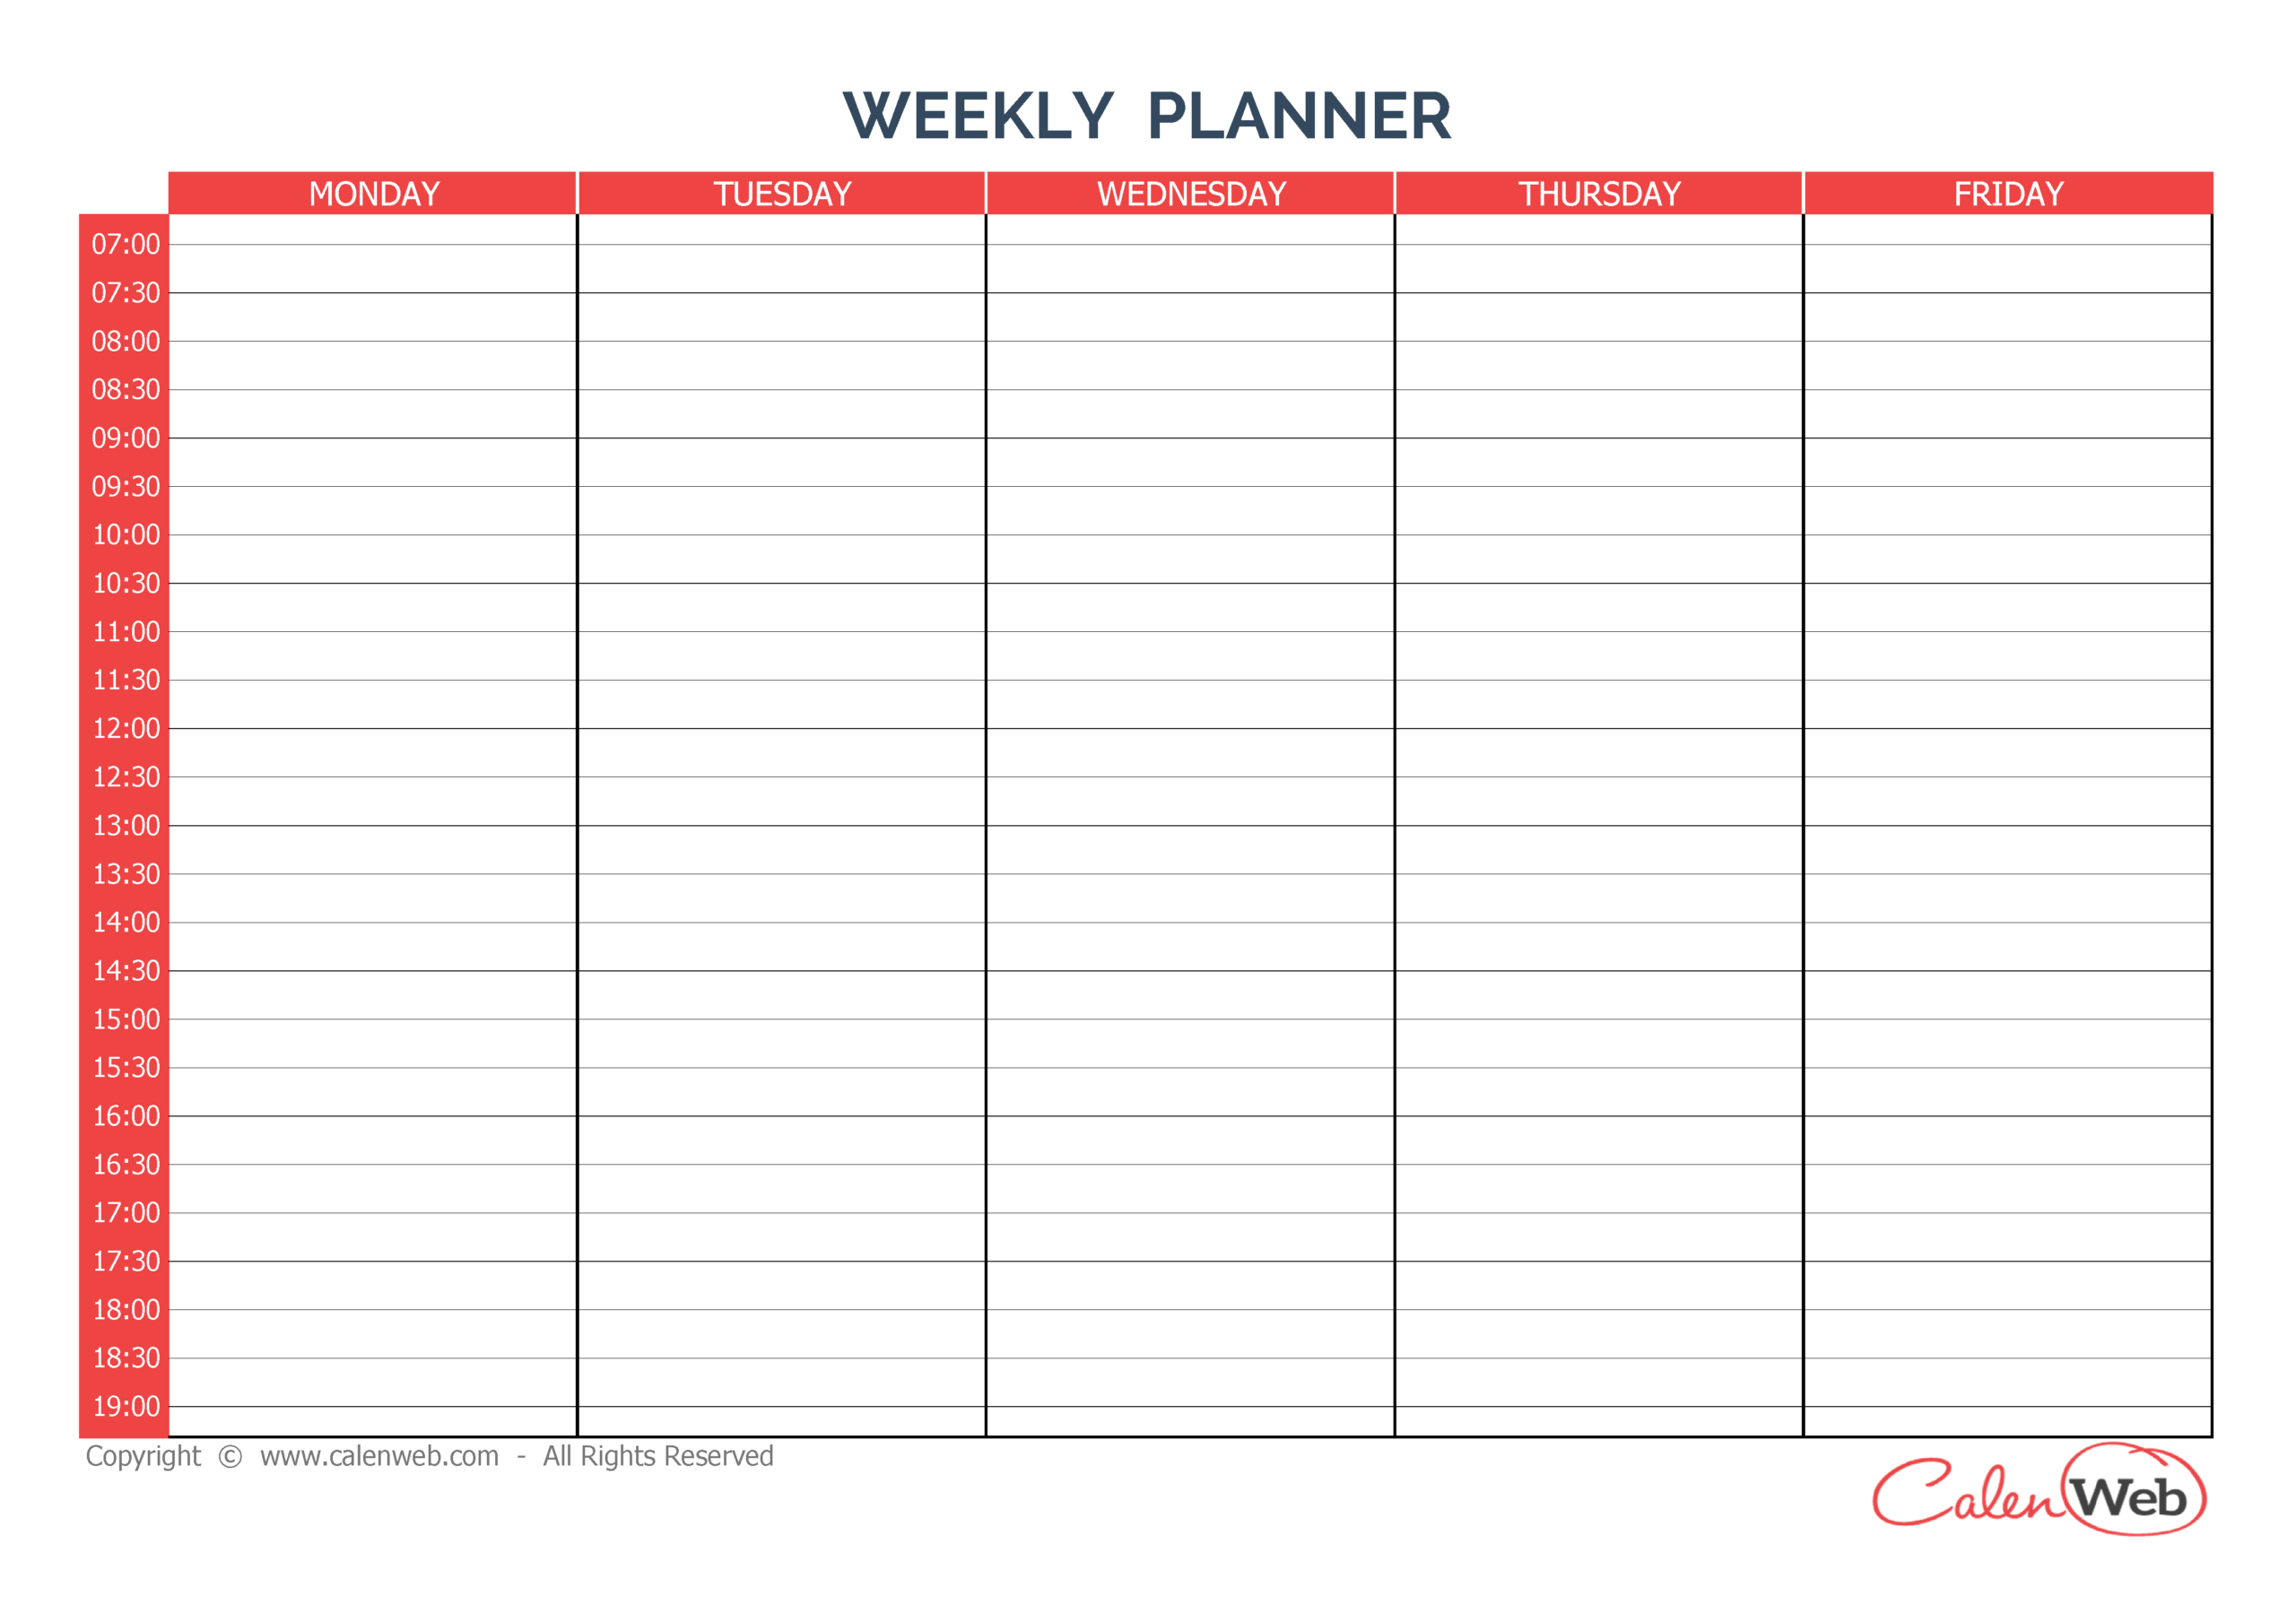 Weekly Planner 5 Days A Week Of 5 Days  Calenweb inside Free Printable Monday Through Friday Calendar